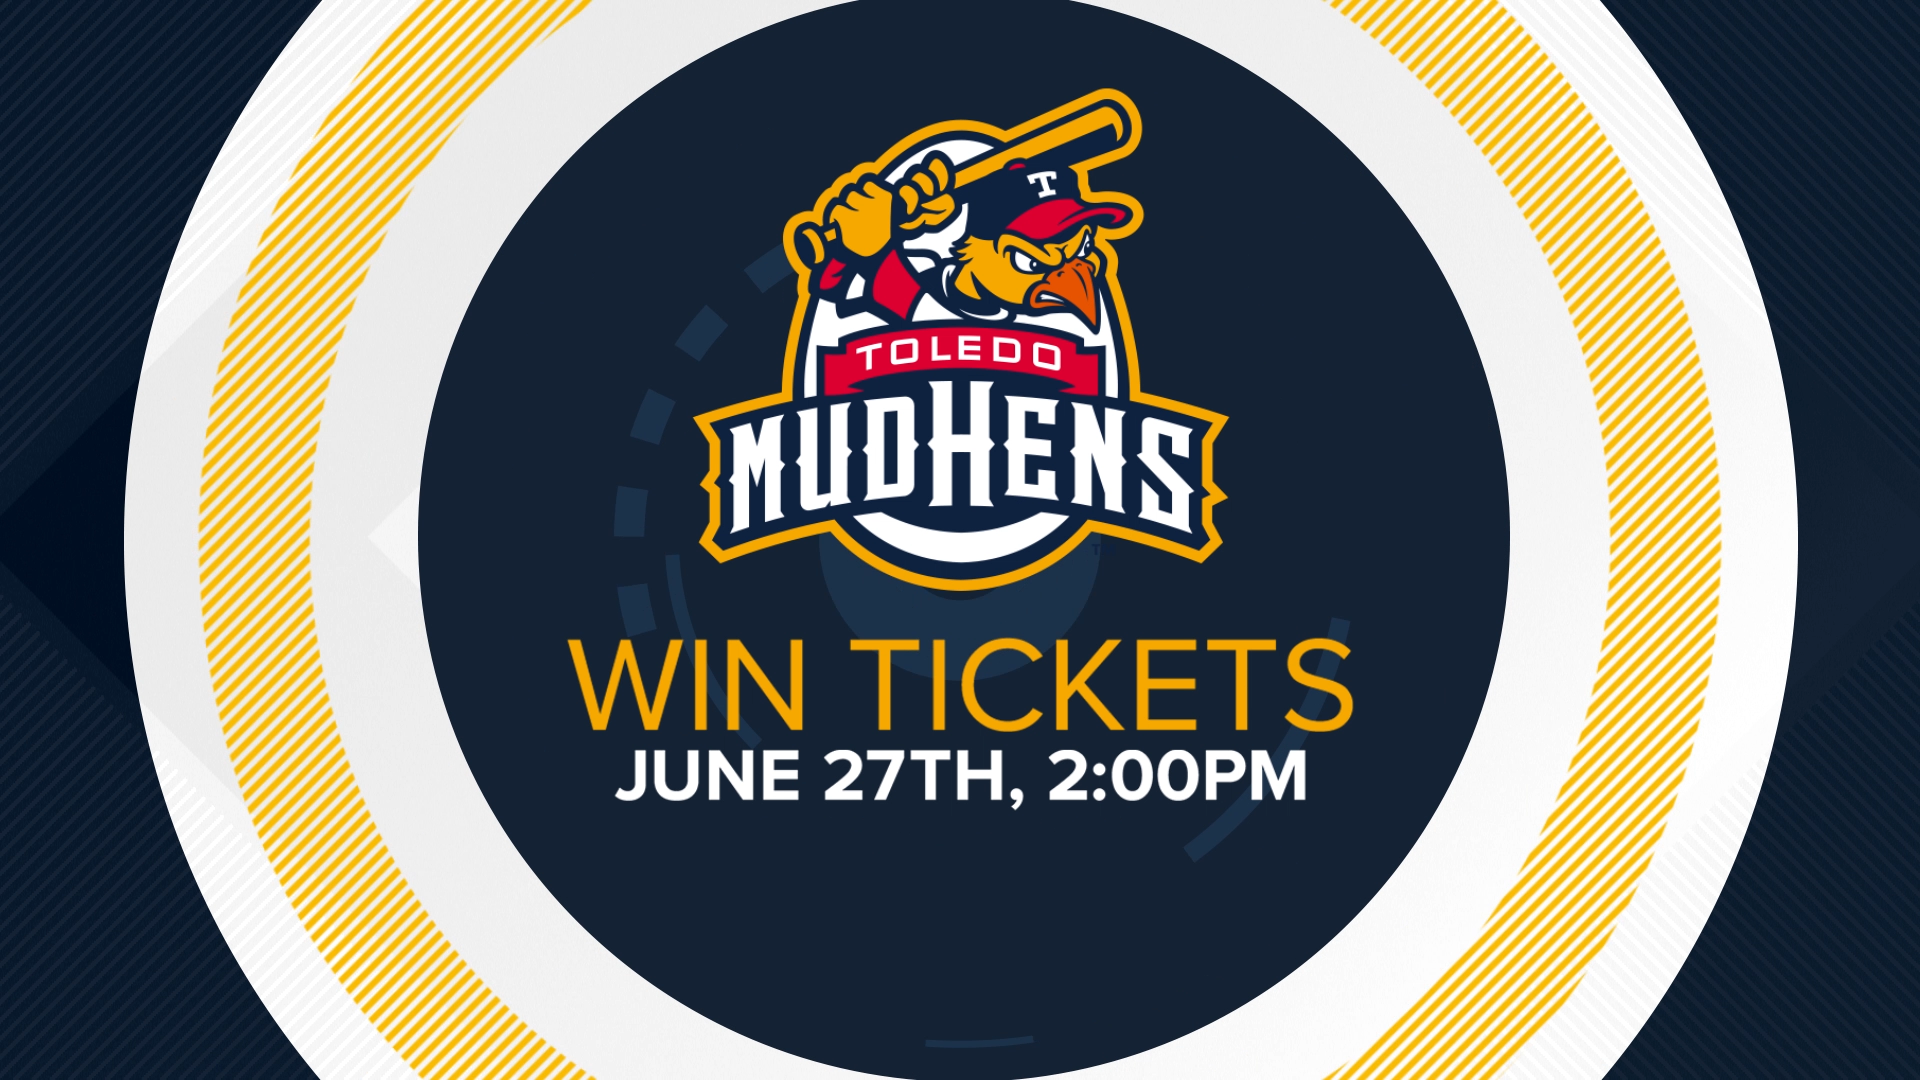 Win Tickets to the Mud Hens!